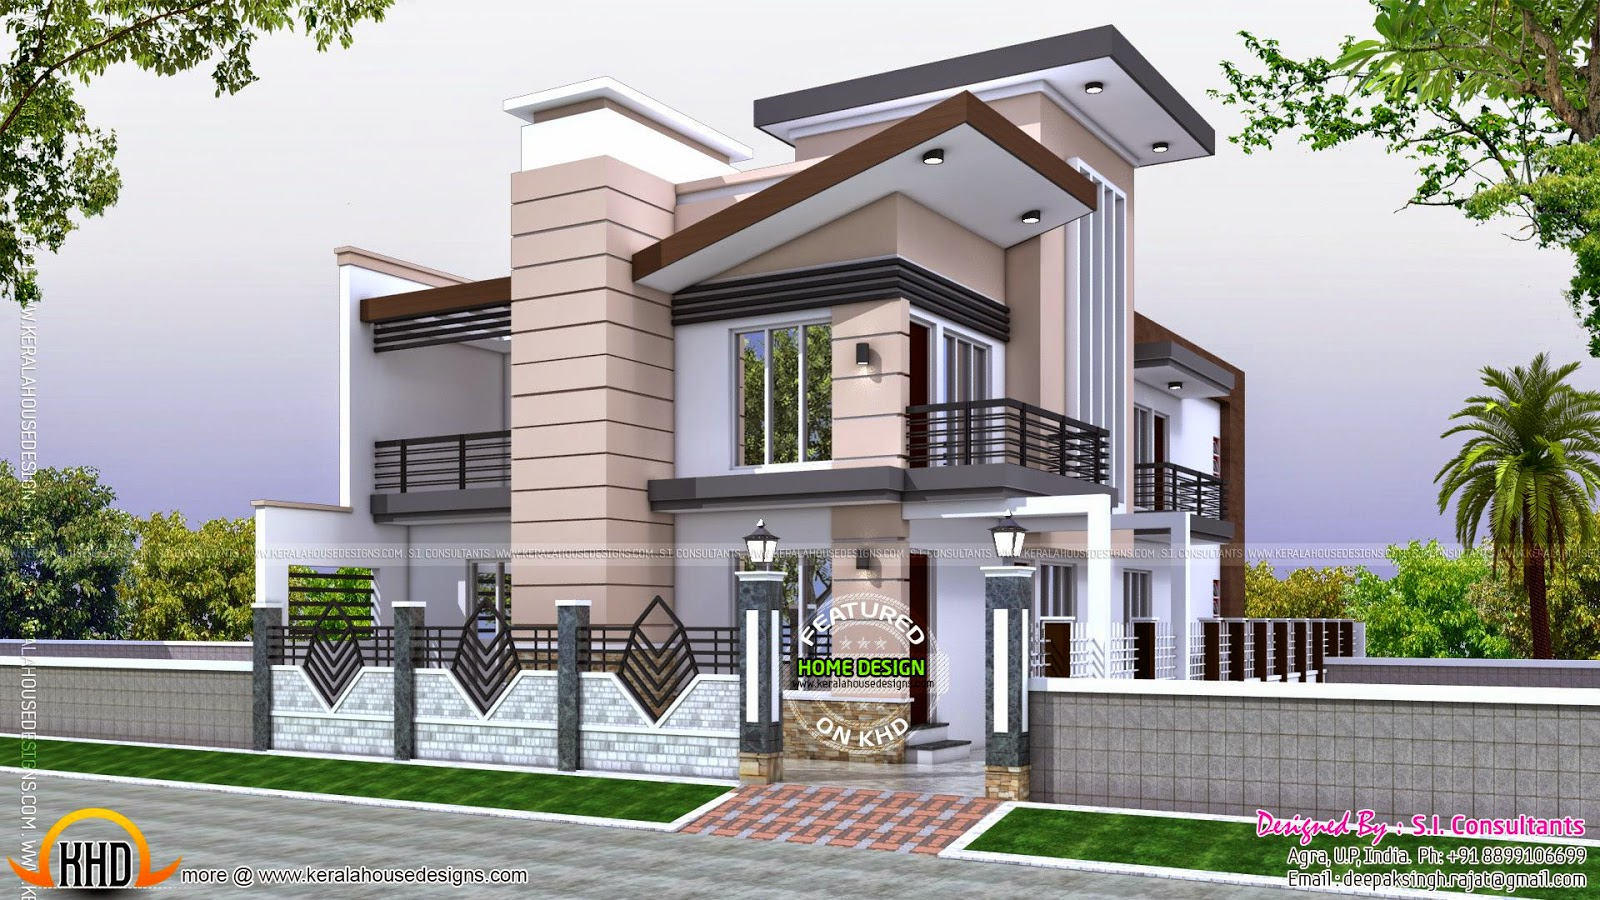 Indian home modern style kerala home design and floor plans for Designs of houses in india